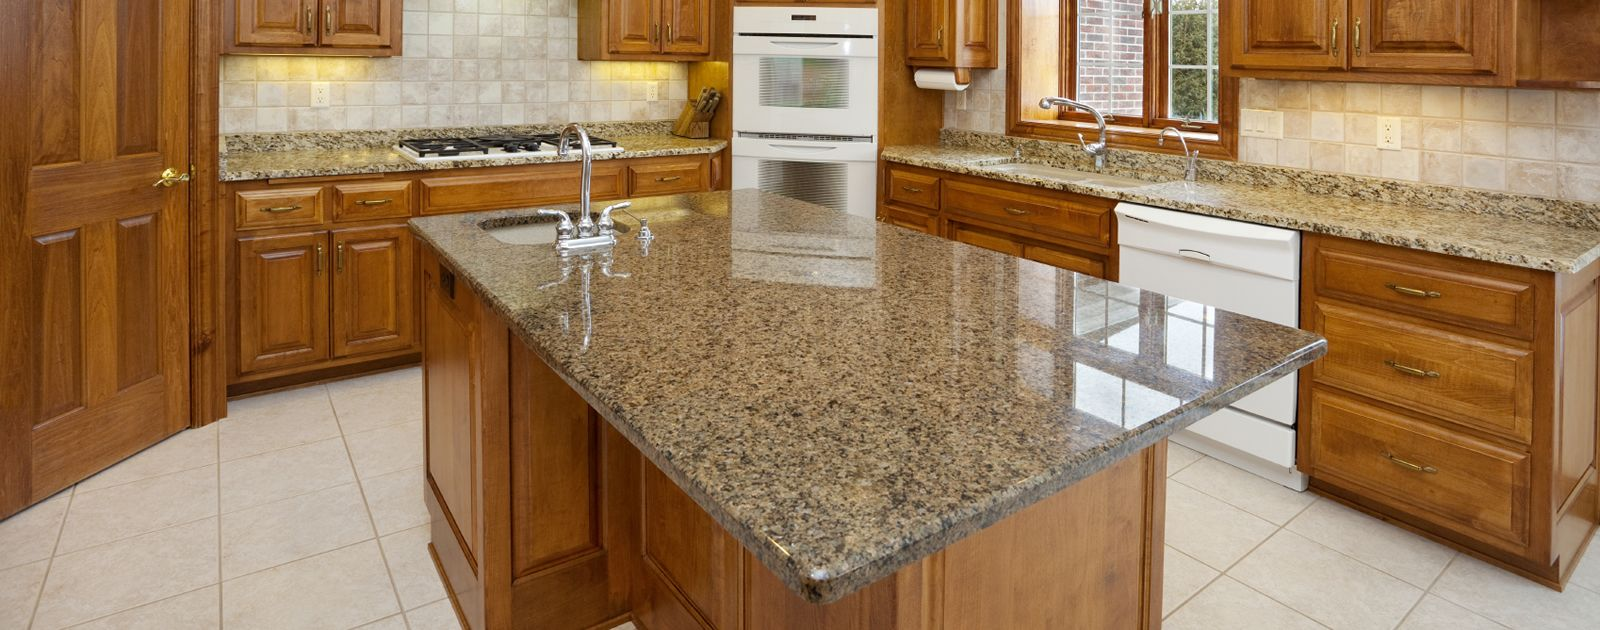 Countertops at affordable prices